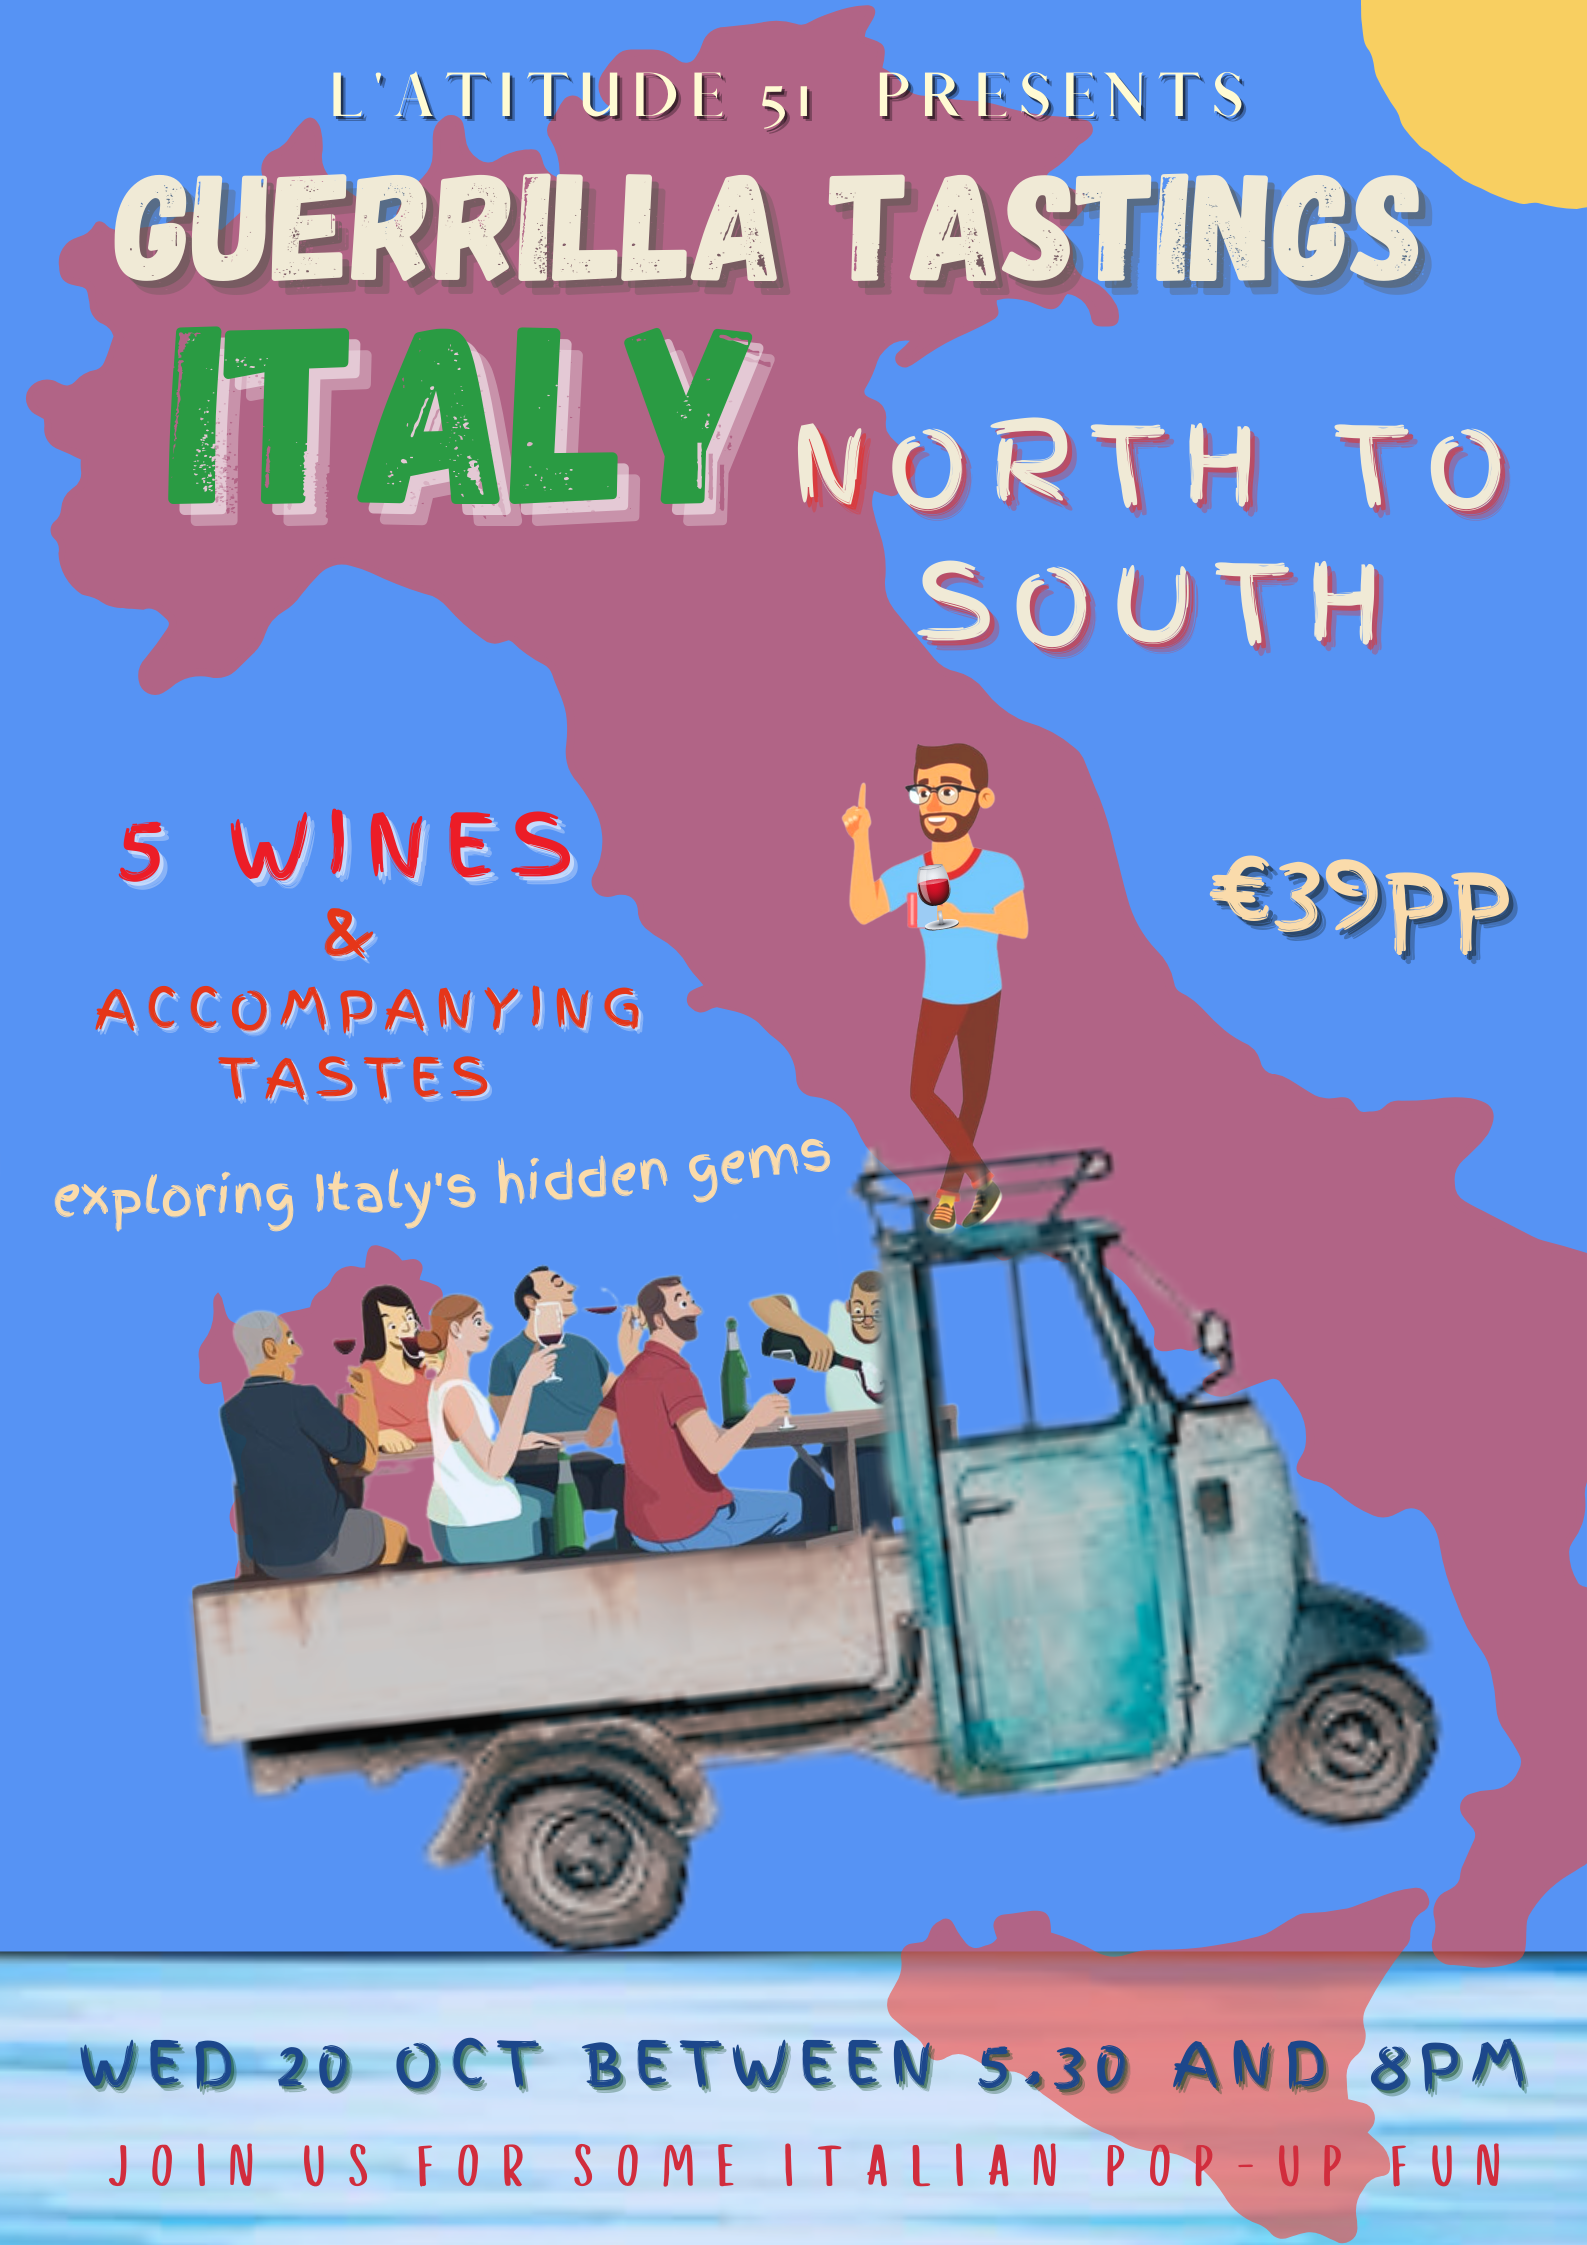 Guerrilla Tastings: Italy North to South